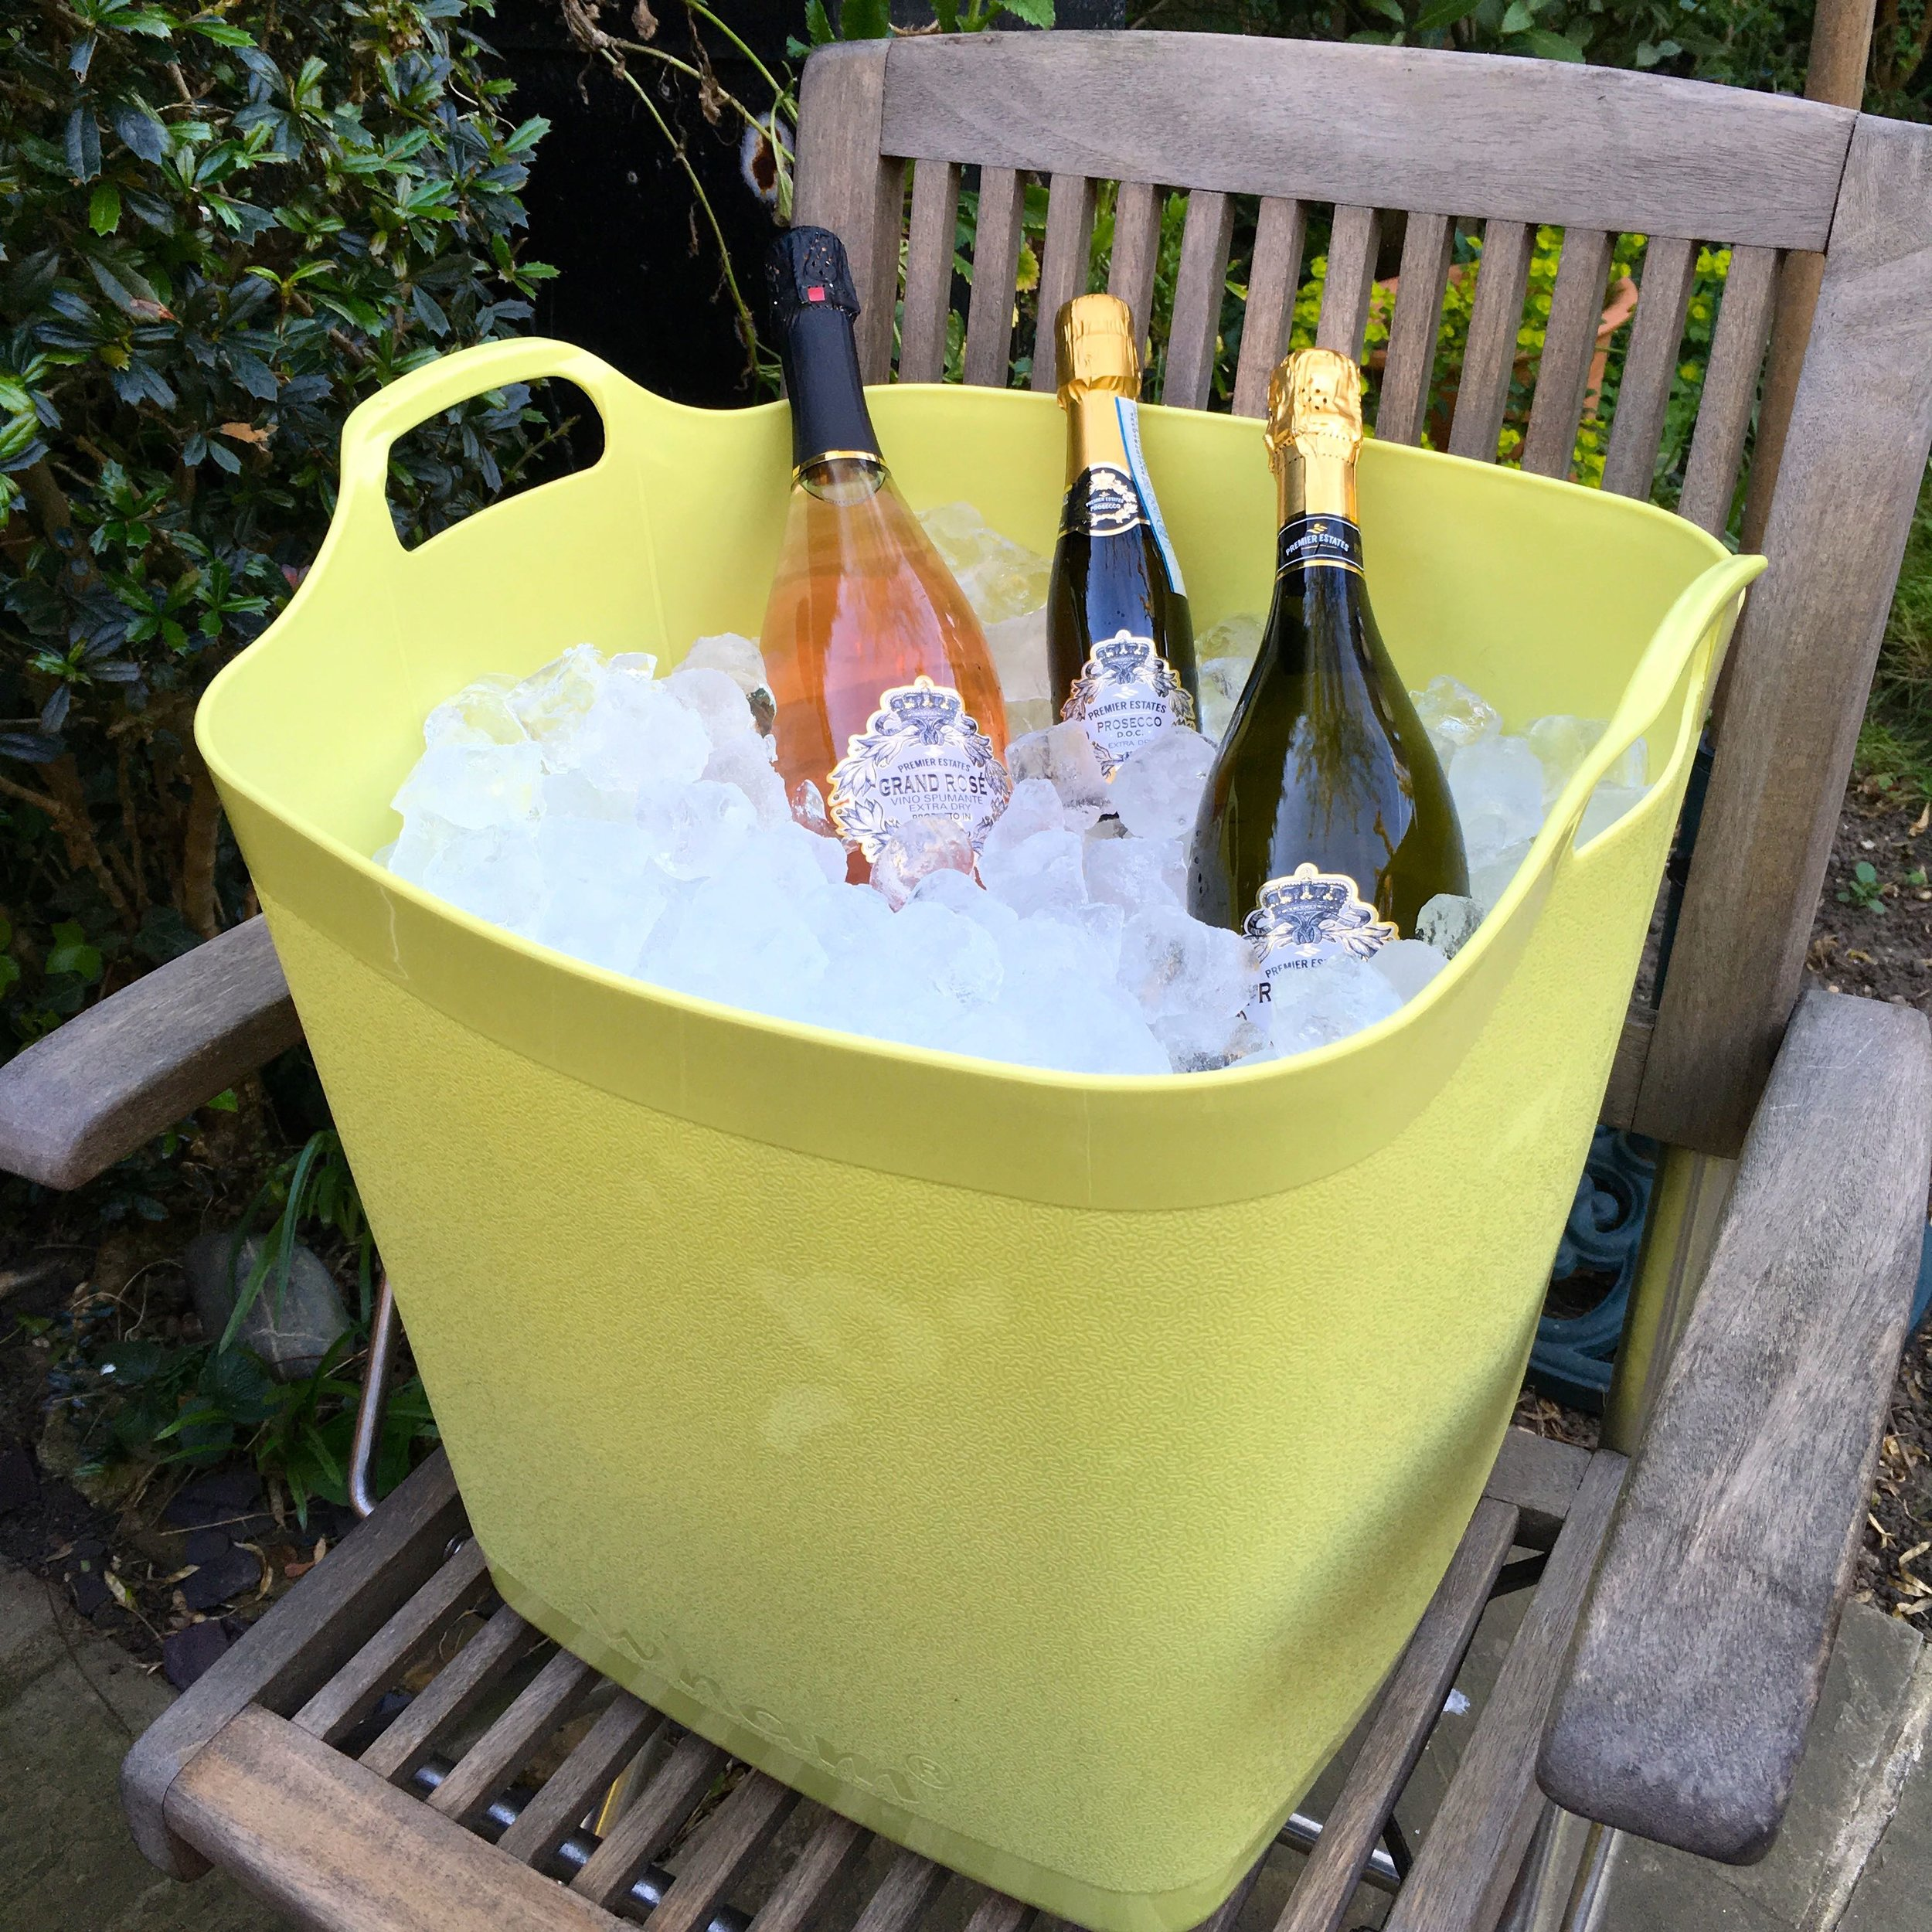 The ice bucket cum flexi-square trug is a good size